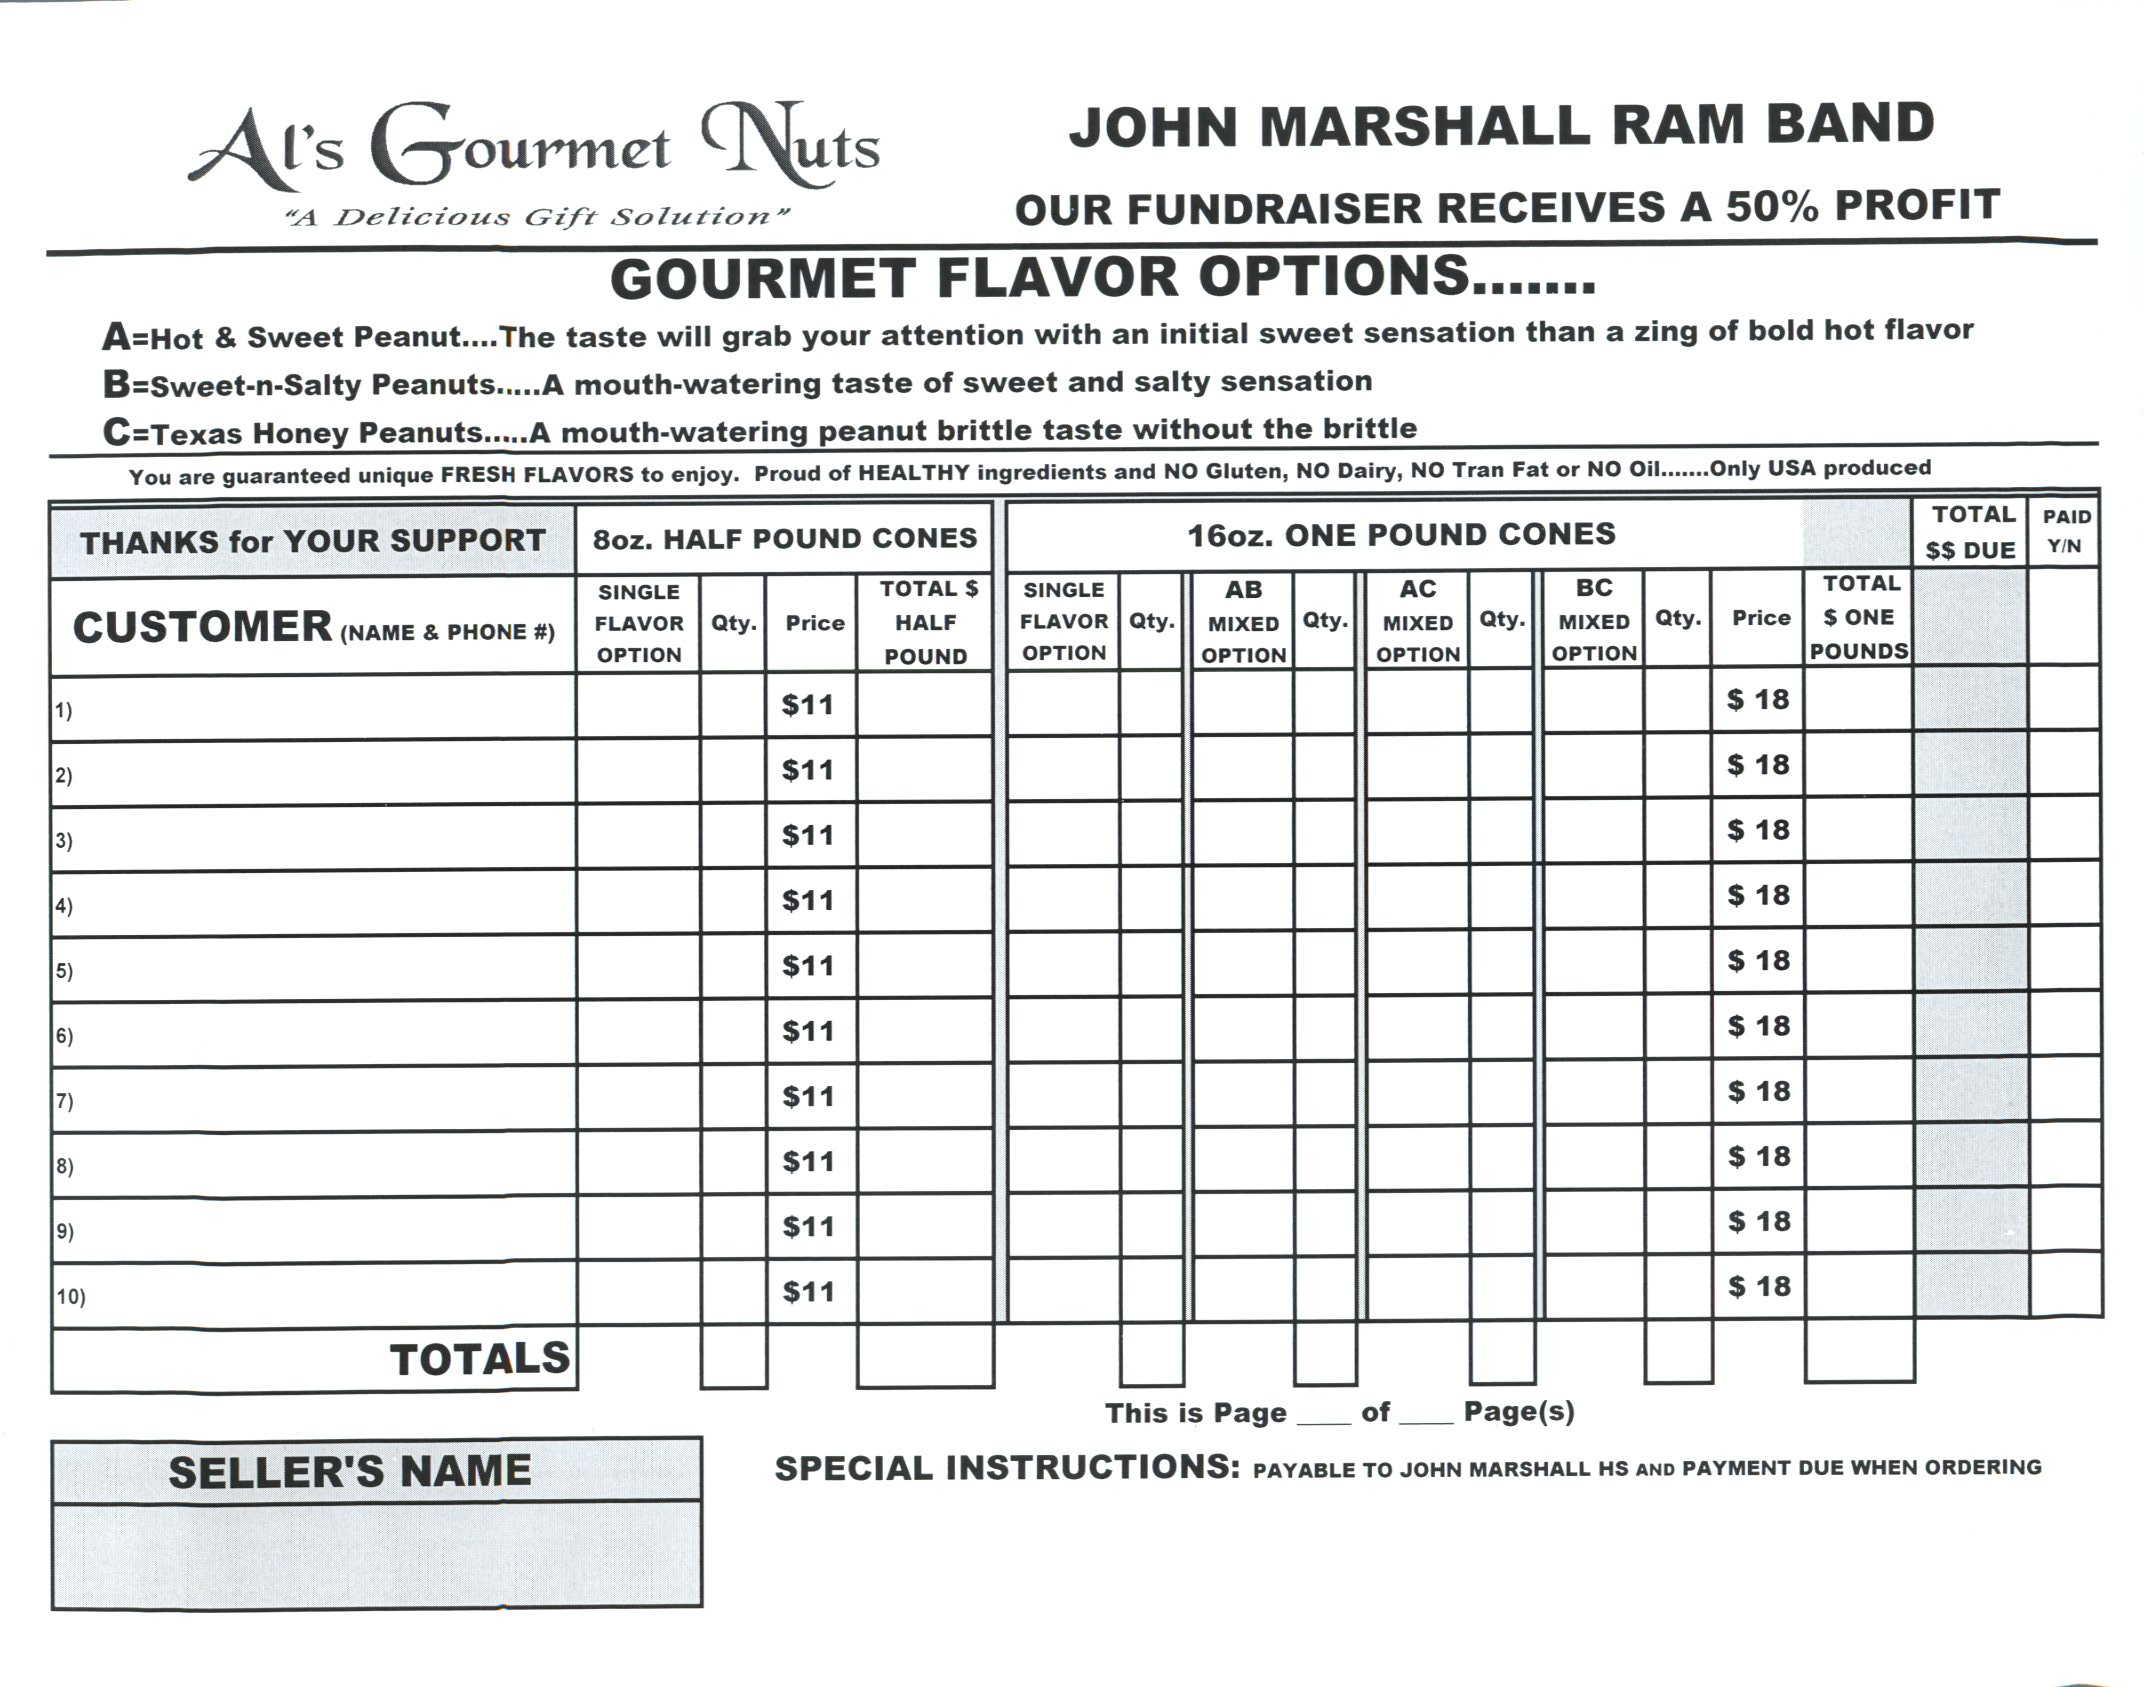 John Marshall Ram Band Custom Order Form 8-2016